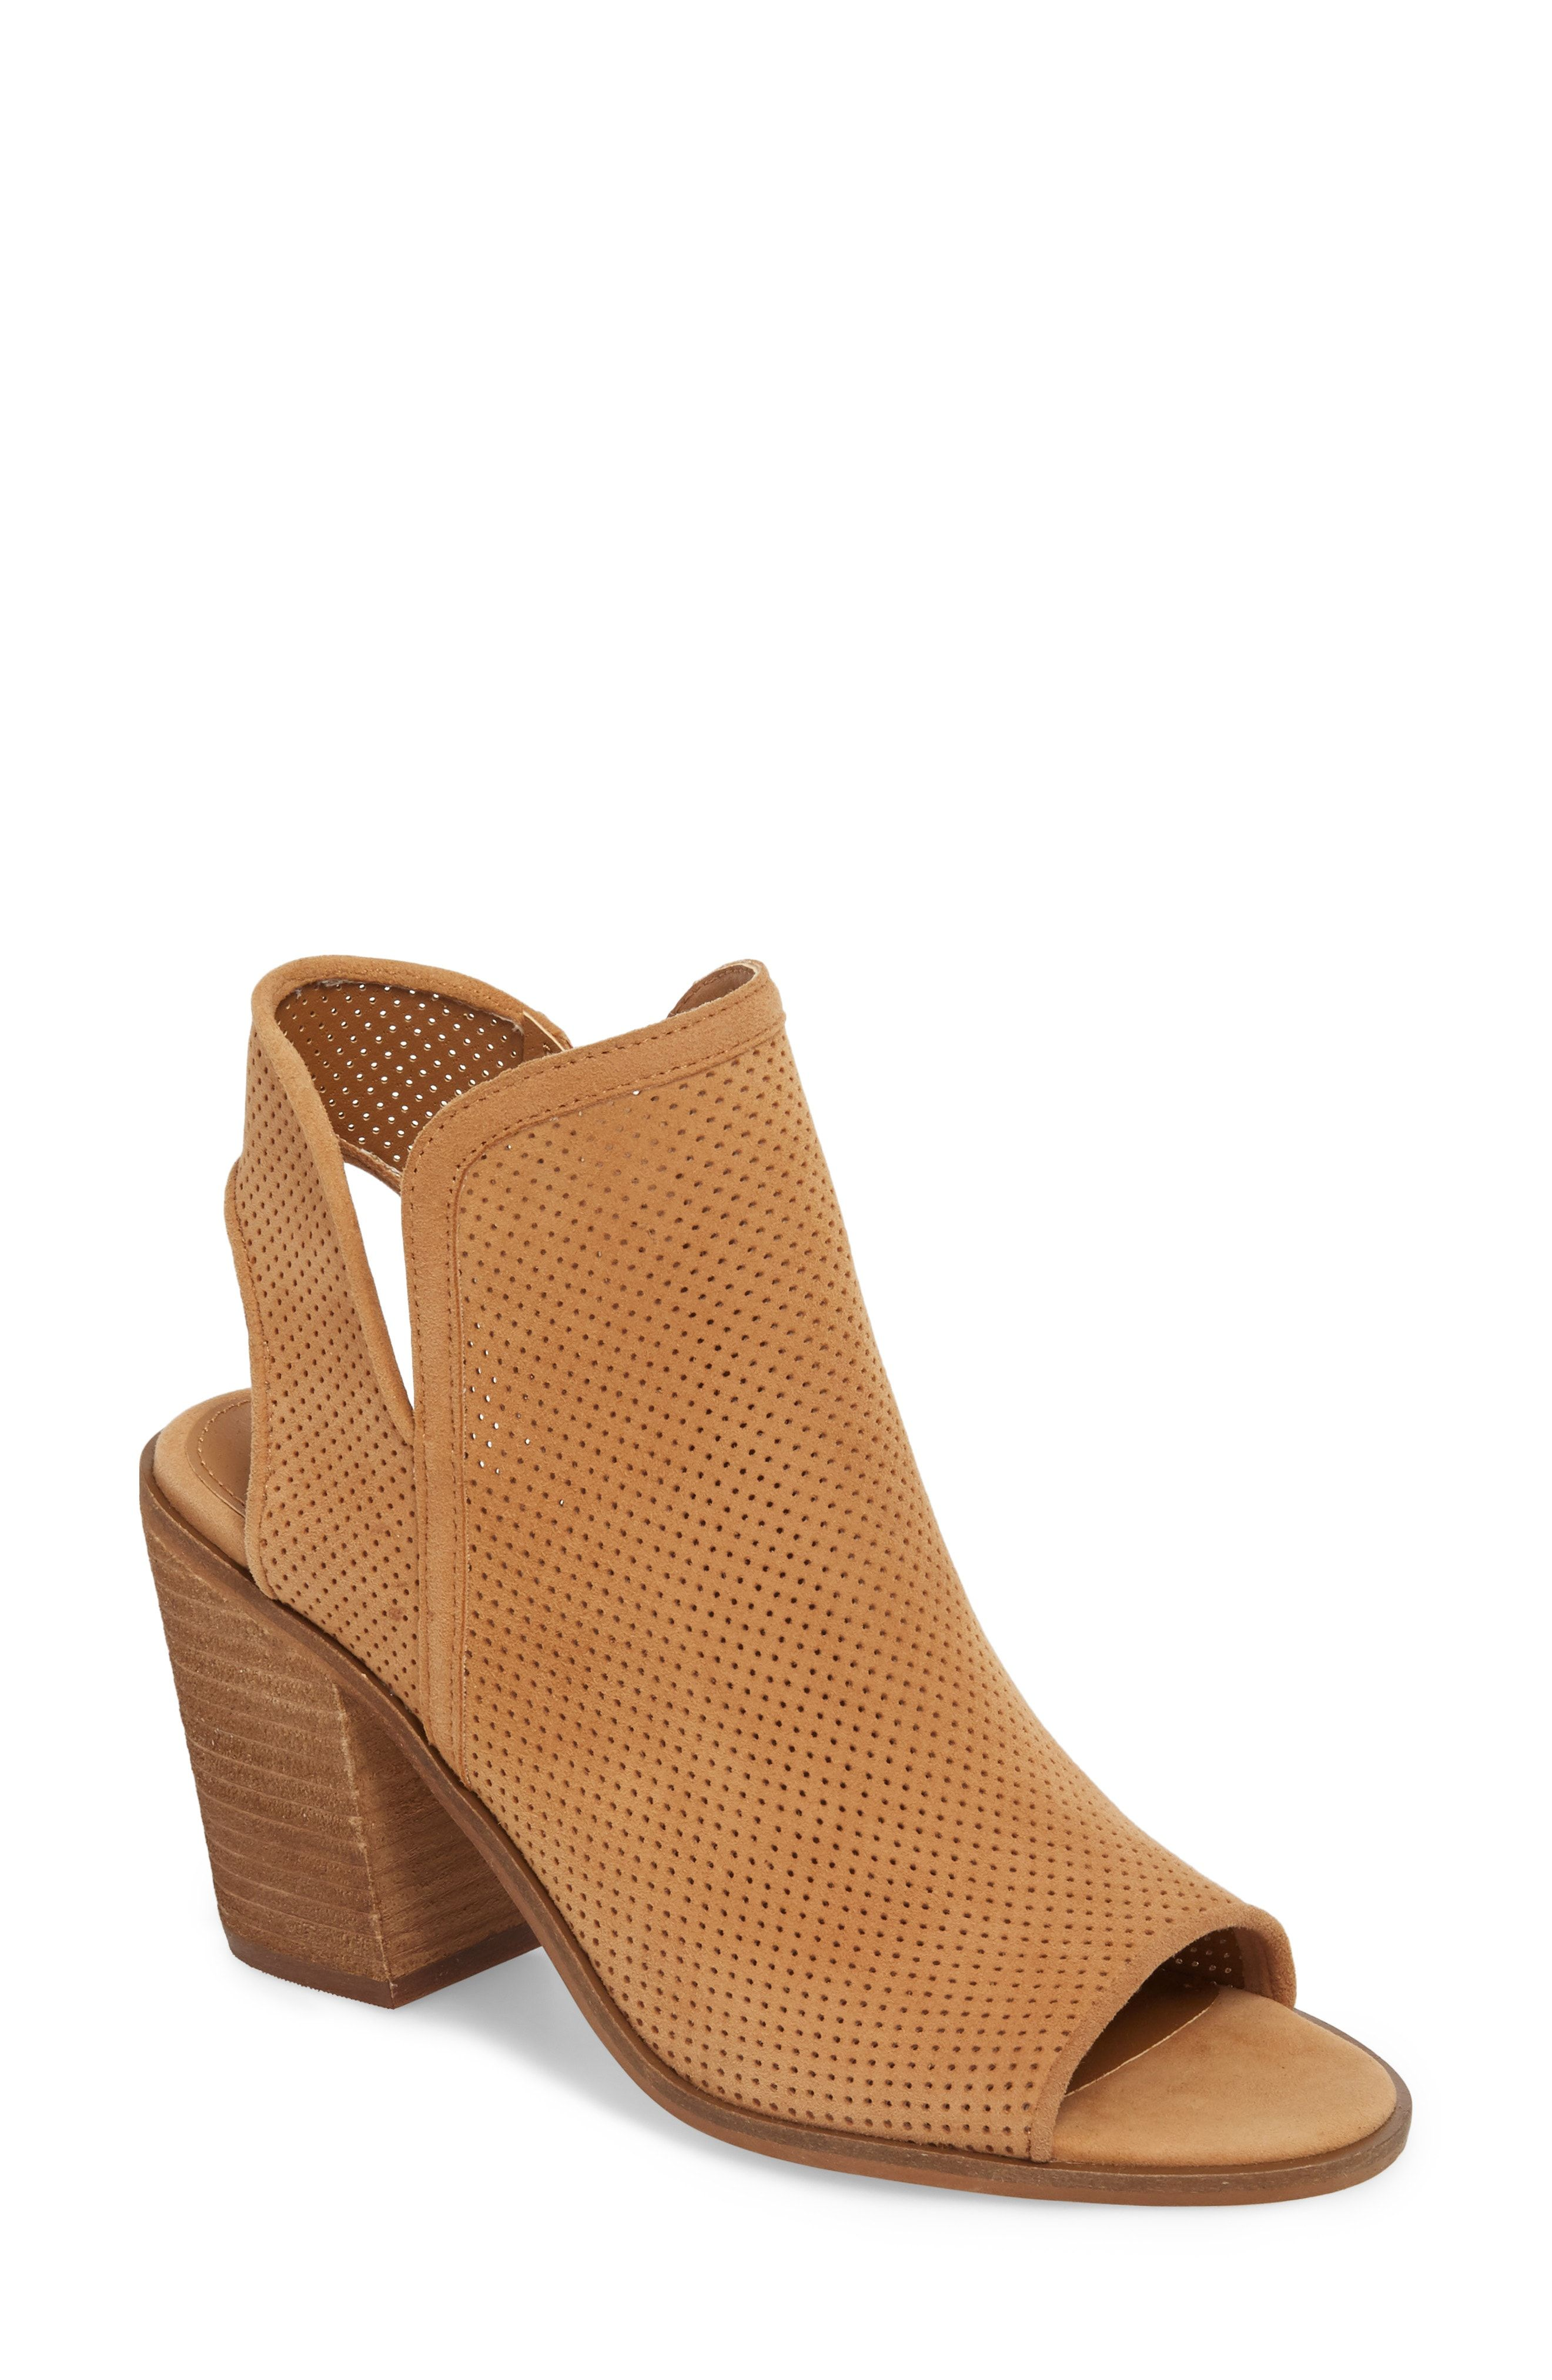 5b74afd6f47 Steve Madden Maxine Perforated Bootie (Women)